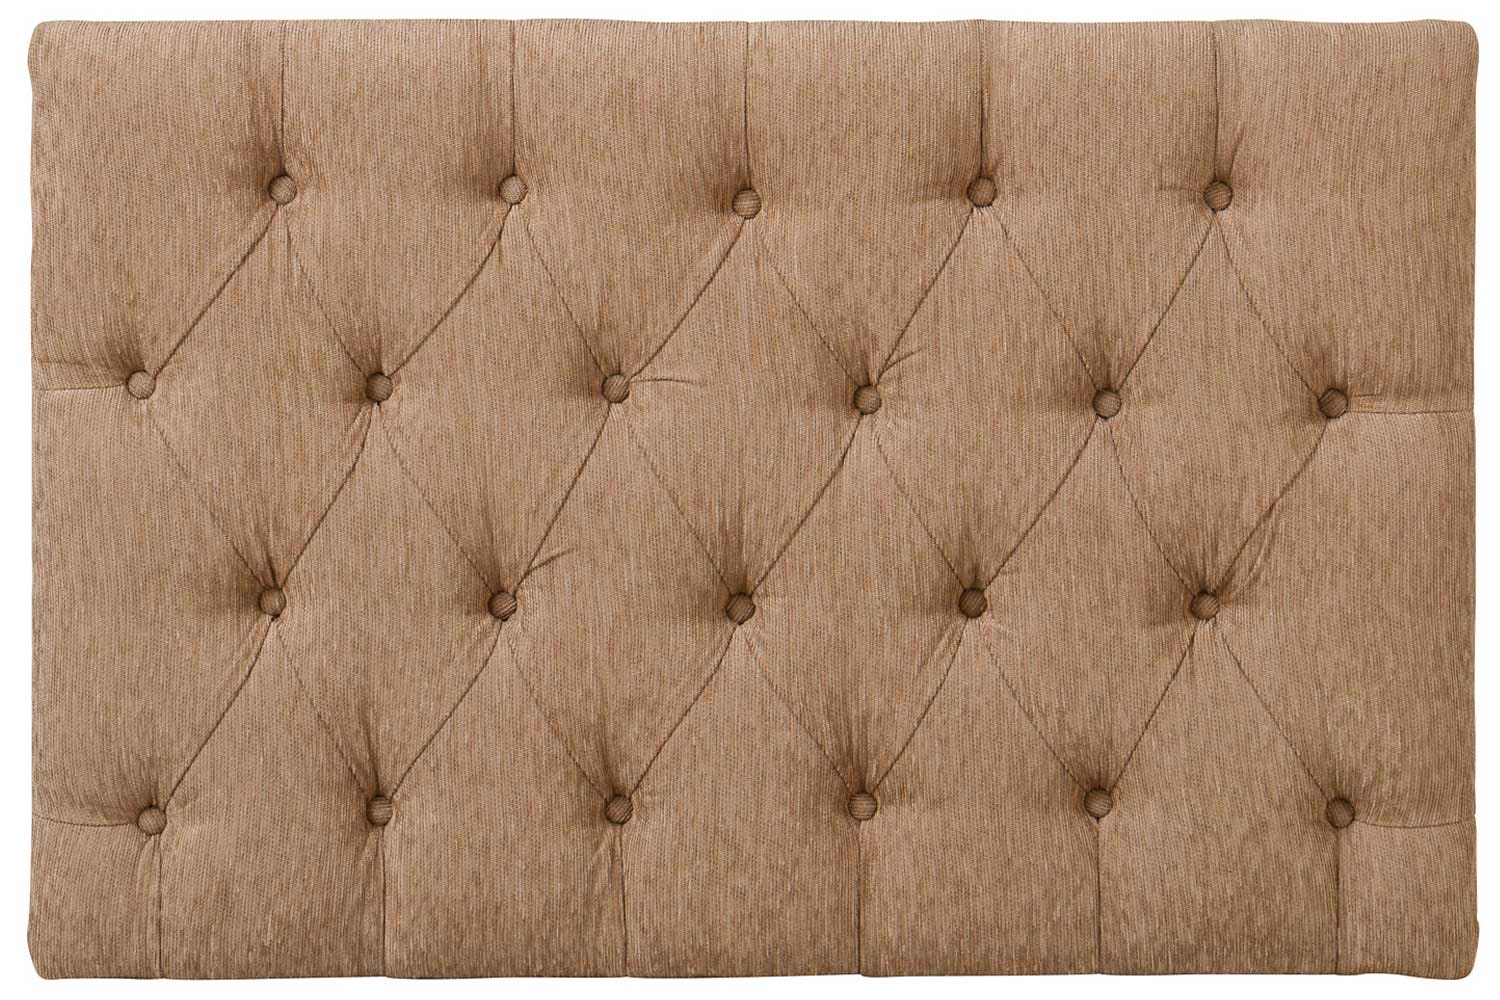 Marley Fabric Headboard | 3'